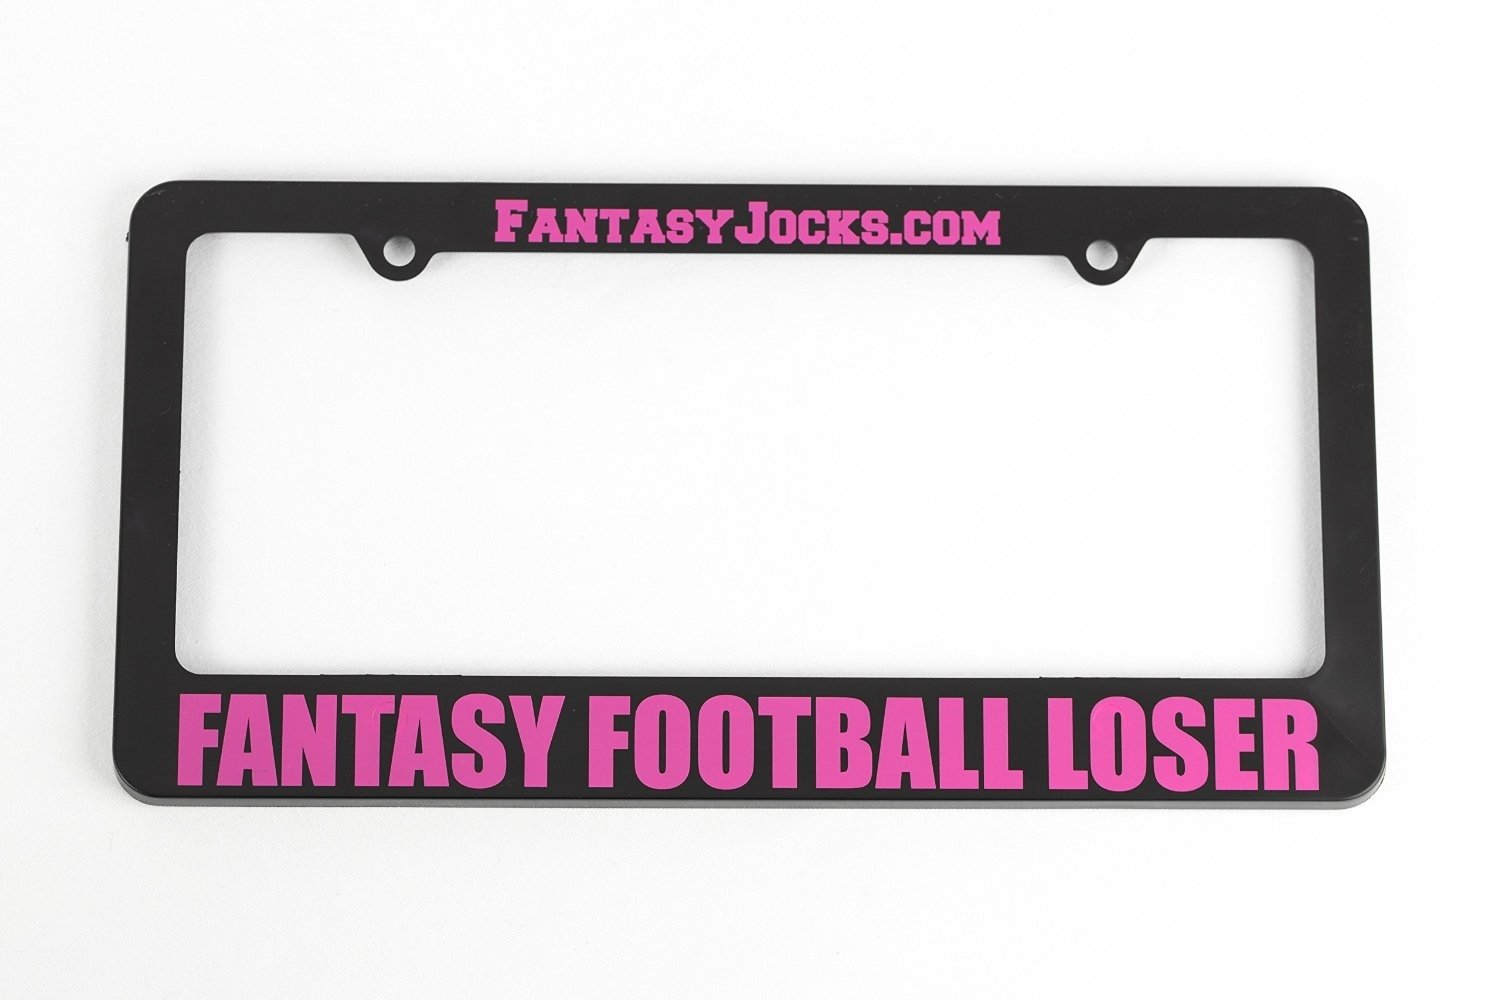 10 Most Popular Last Place Fantasy Football Ideas the best fantasy football trophies sackosource 2020